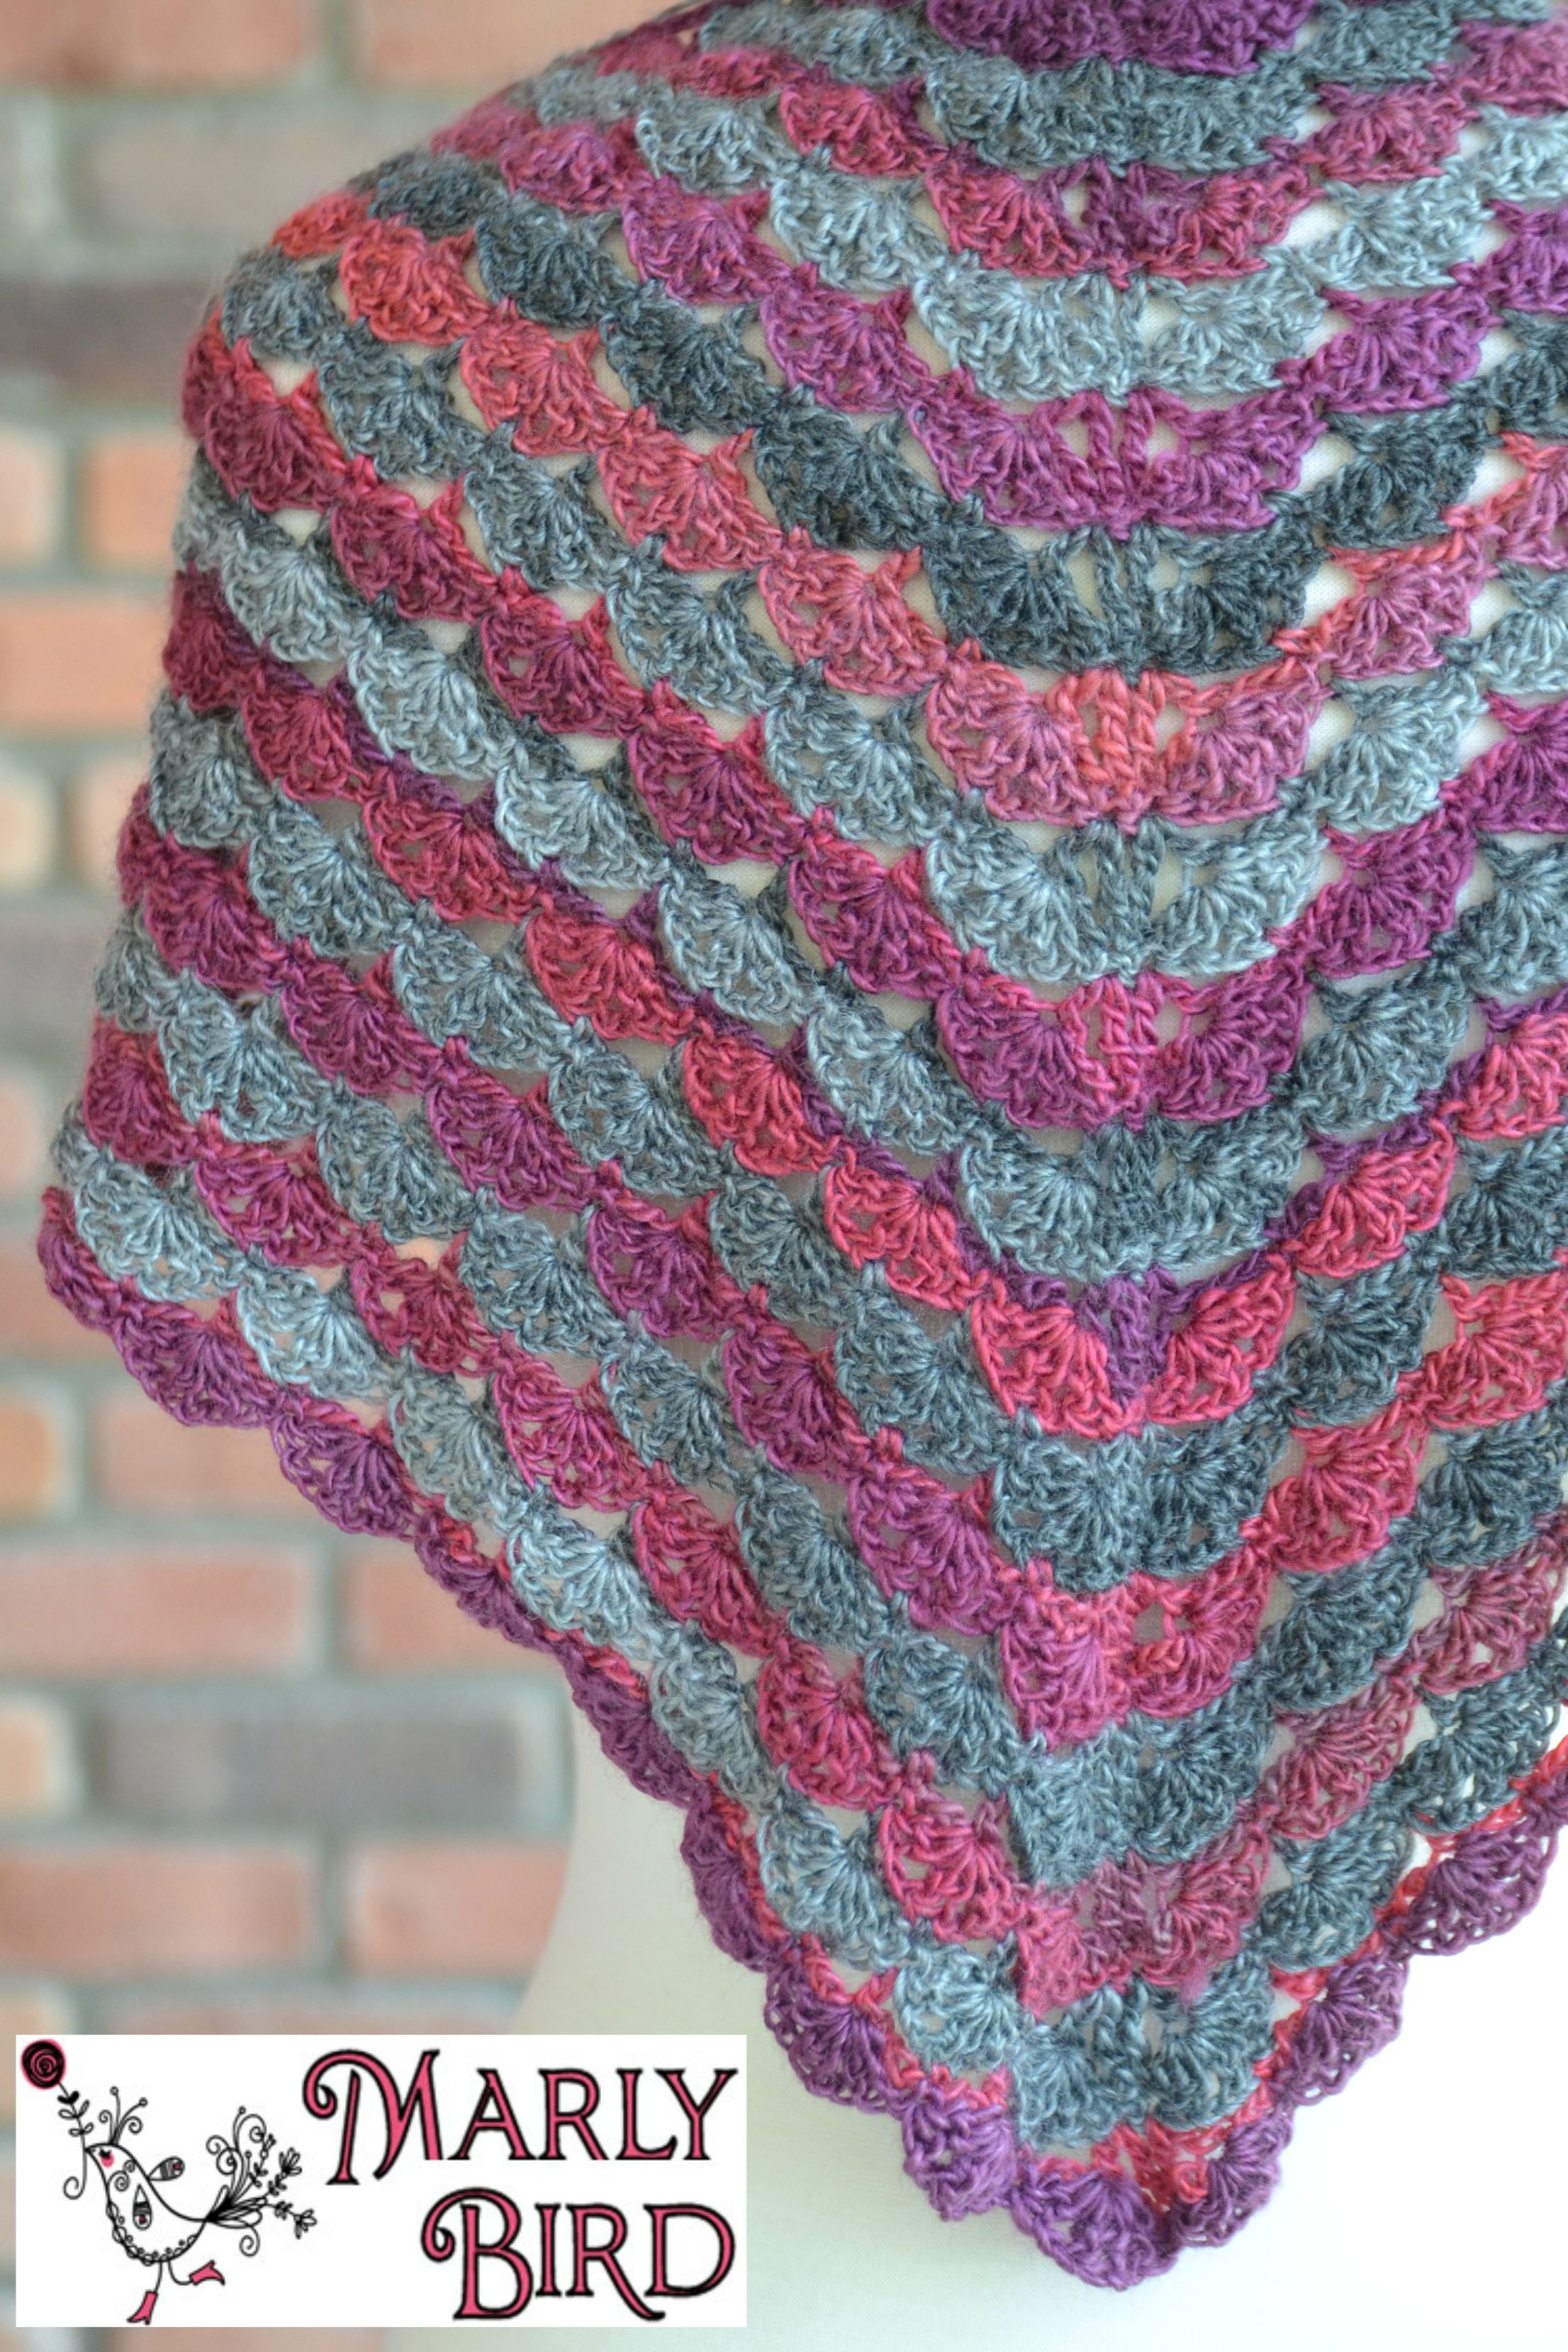 Free crochet shawl pattern by marly bird named no stopping me now this free crochet shawl pattern is one that i designed as a free pattern giveaway at the marly bird meet and greet while attending the knit and crochet show bankloansurffo Image collections